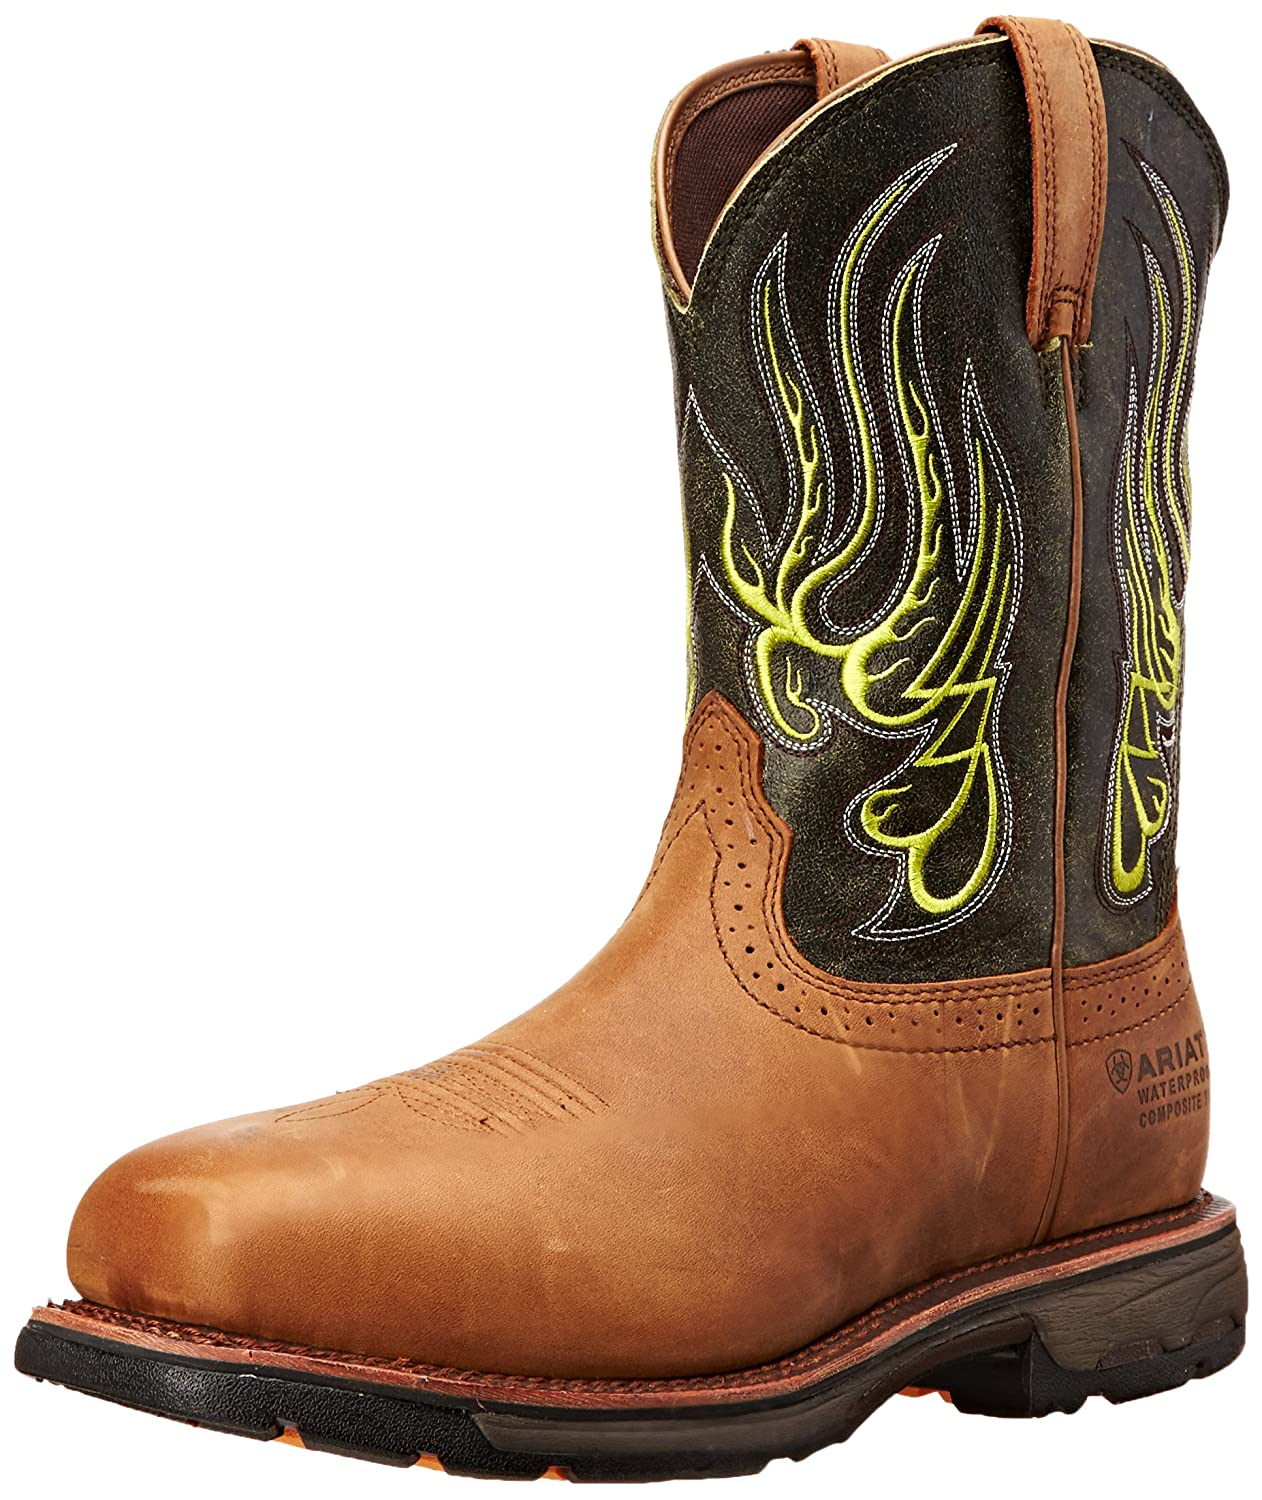 529dc57c202 Ariat Men's Workhog Mesteno Wide Square H2O Composite Toe Work Boot